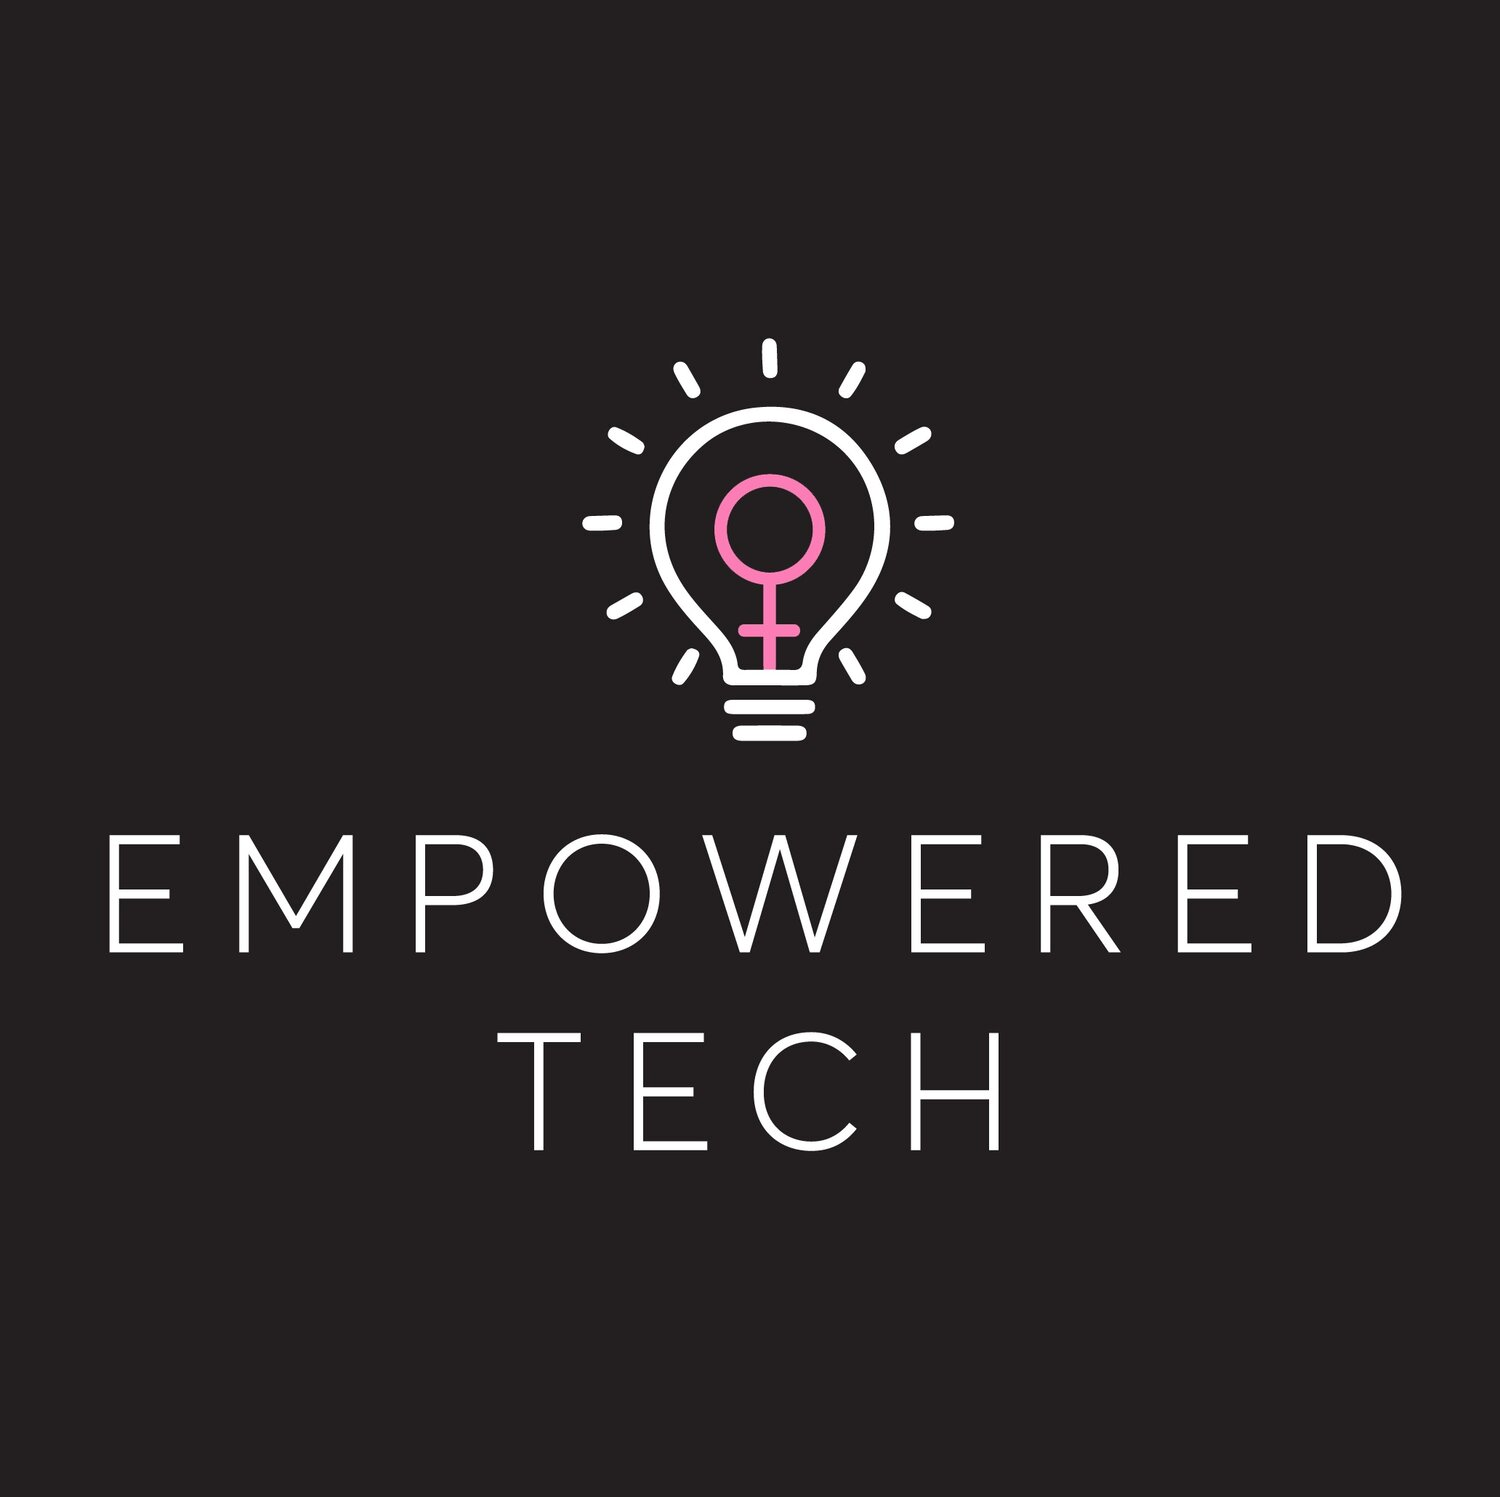 Empowered Tech